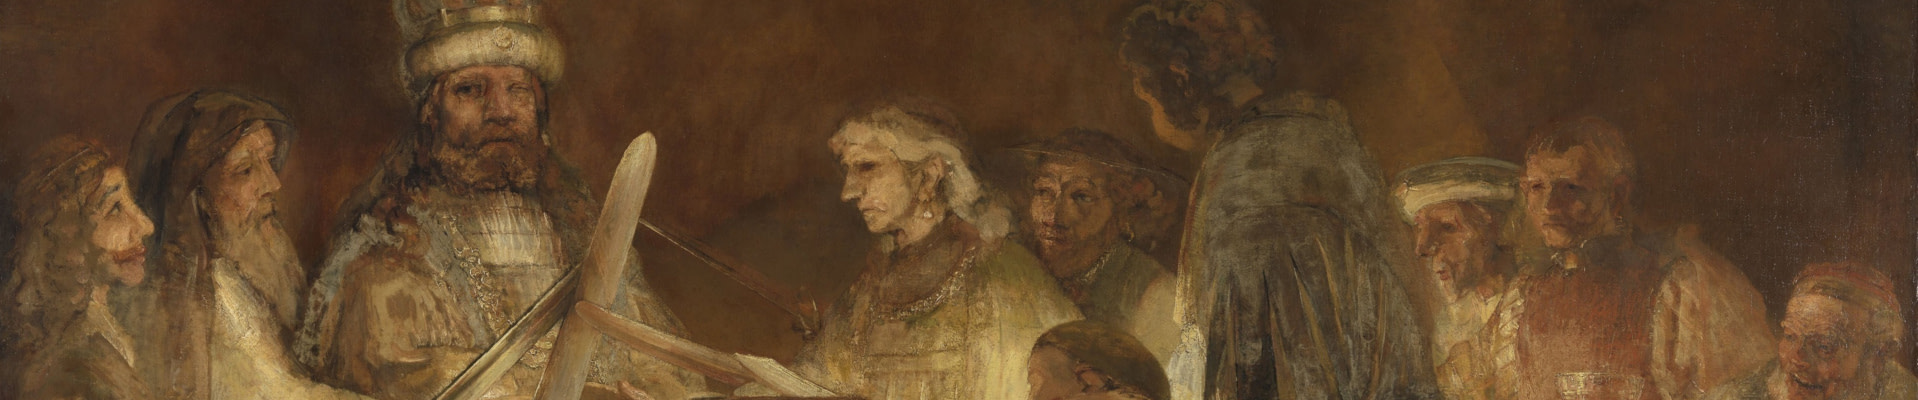 Rembrandt style wall art canvas and paper prints